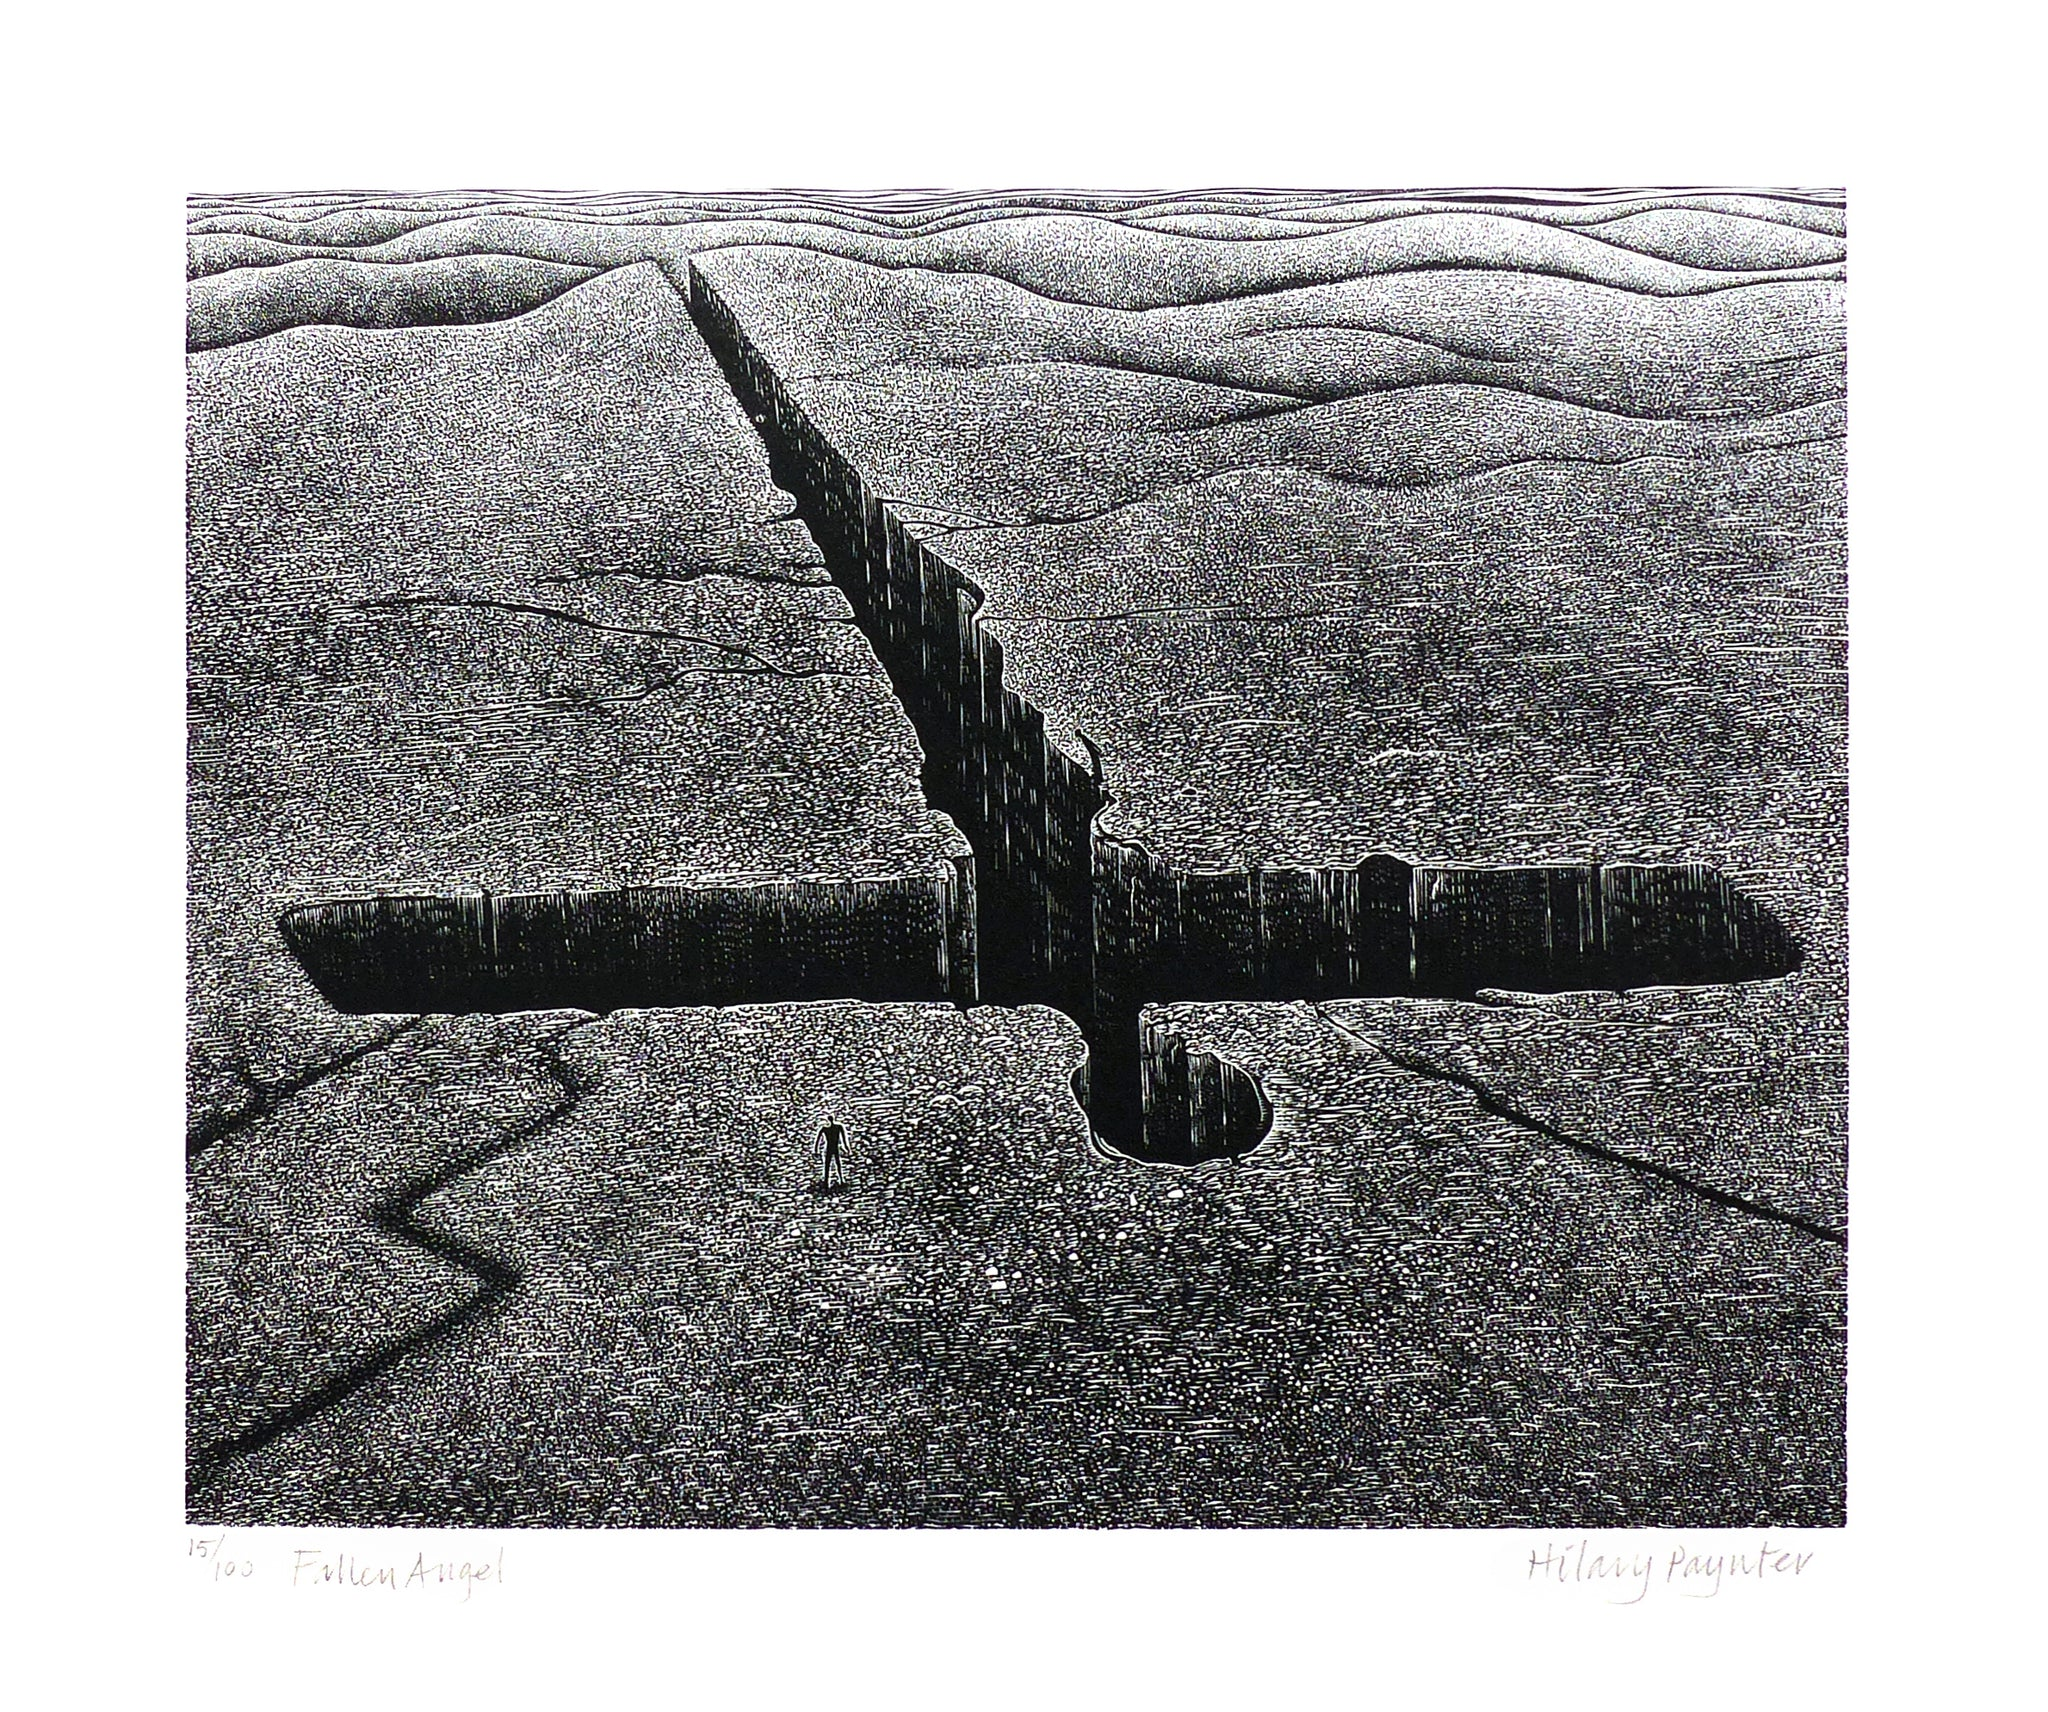 Hilary Paynter Wood Engraving: Fallen Angel